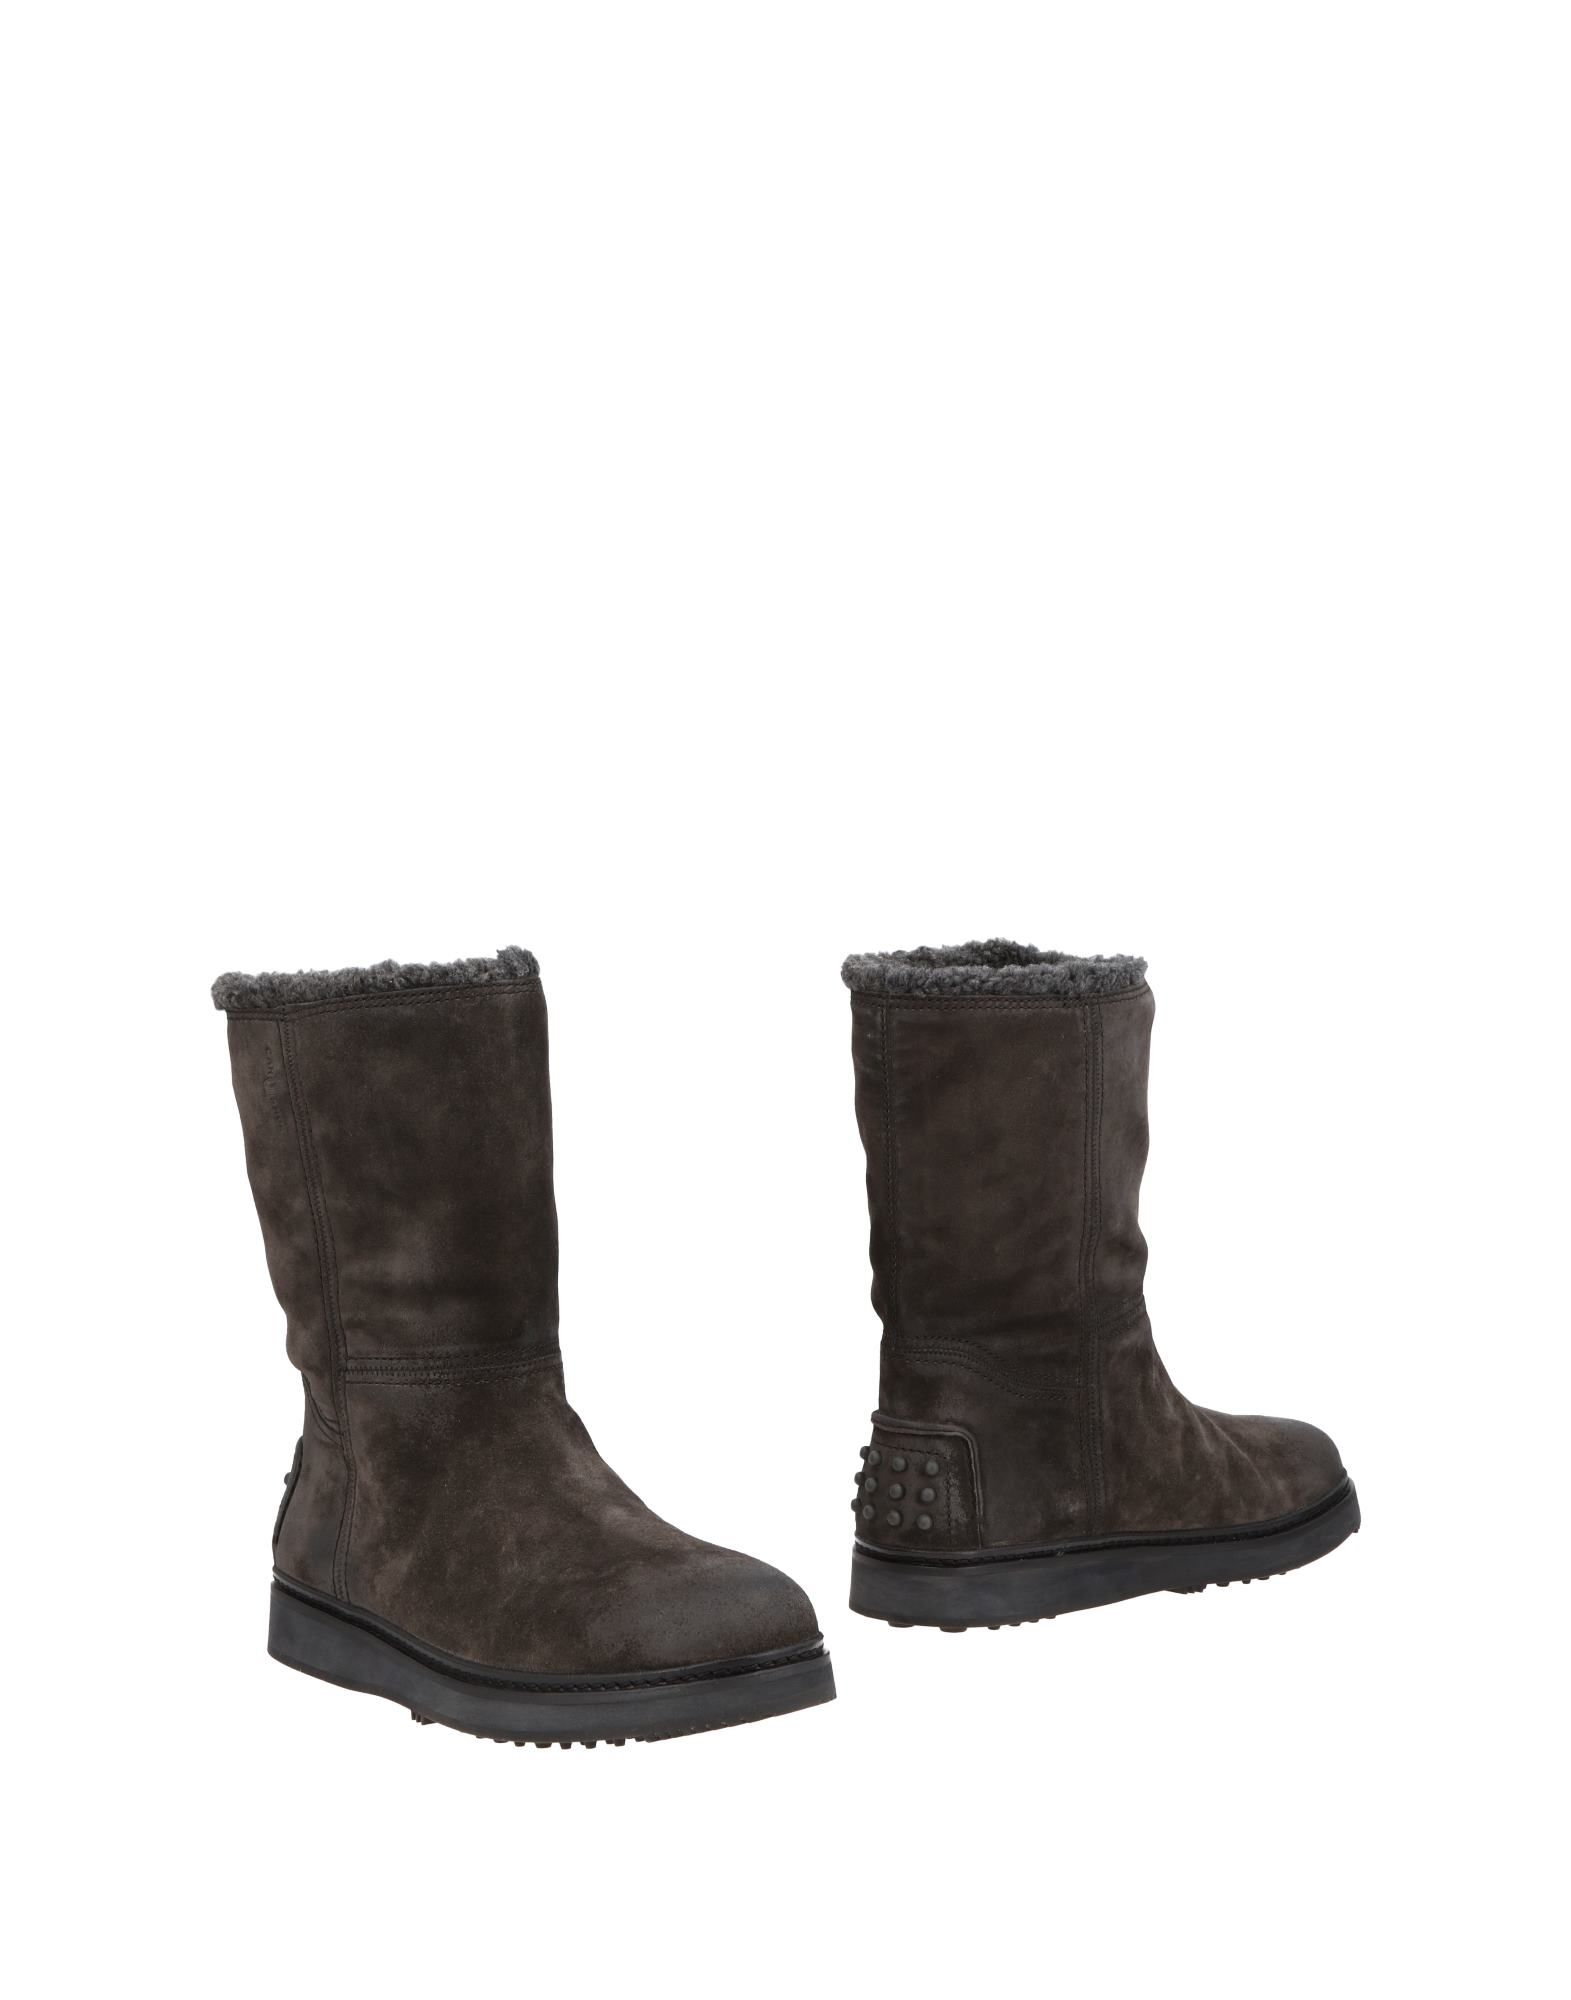 Carshoe Boots Boots - Men Carshoe Boots Carshoe online on  Canada - 11497579KL 9a742f